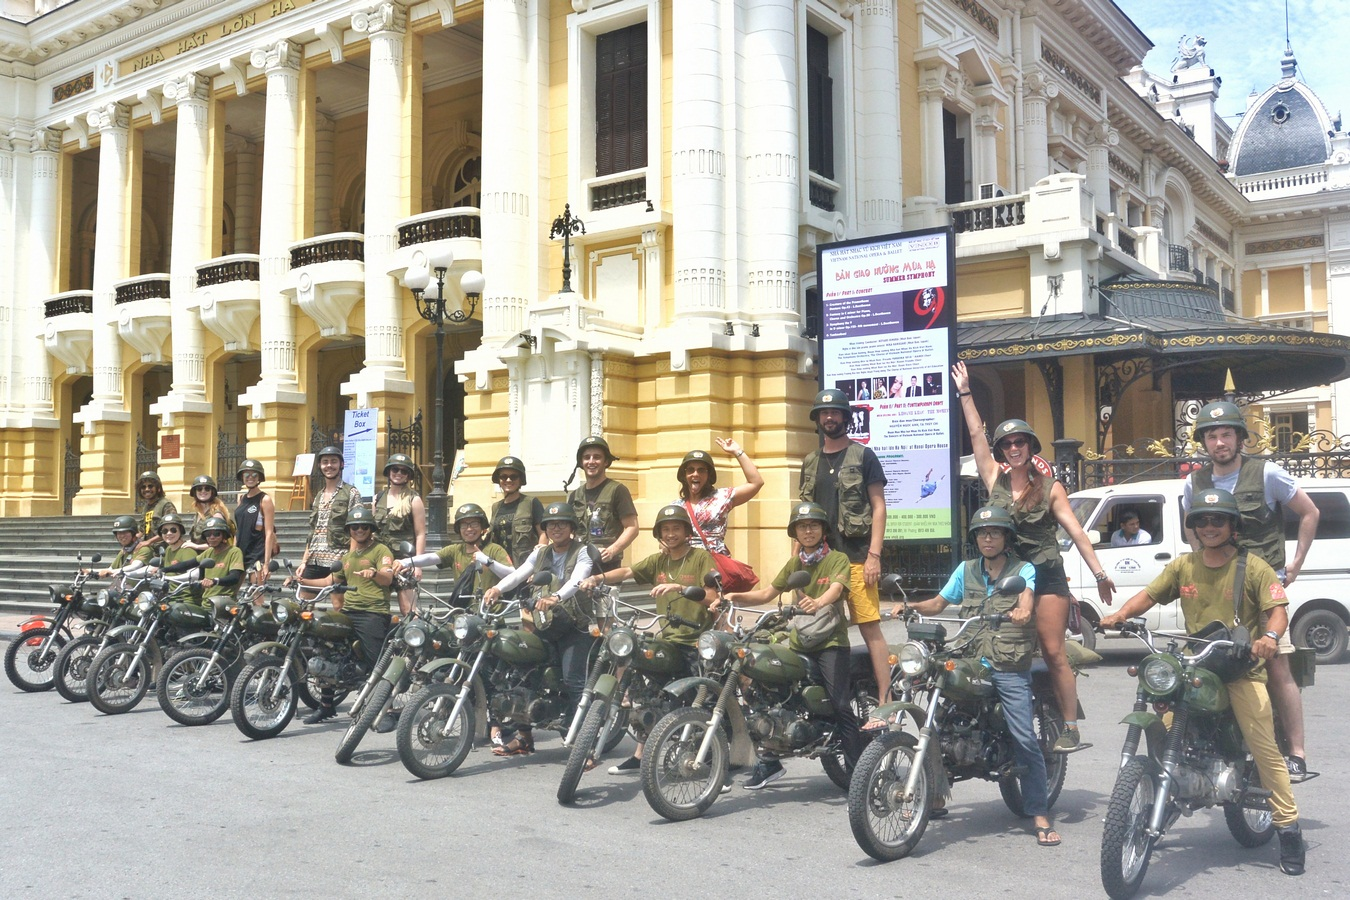 Hanoi Motorbike City Tours : Food , Culture, Sight & Fun on Vintage Minsk Motorcycle